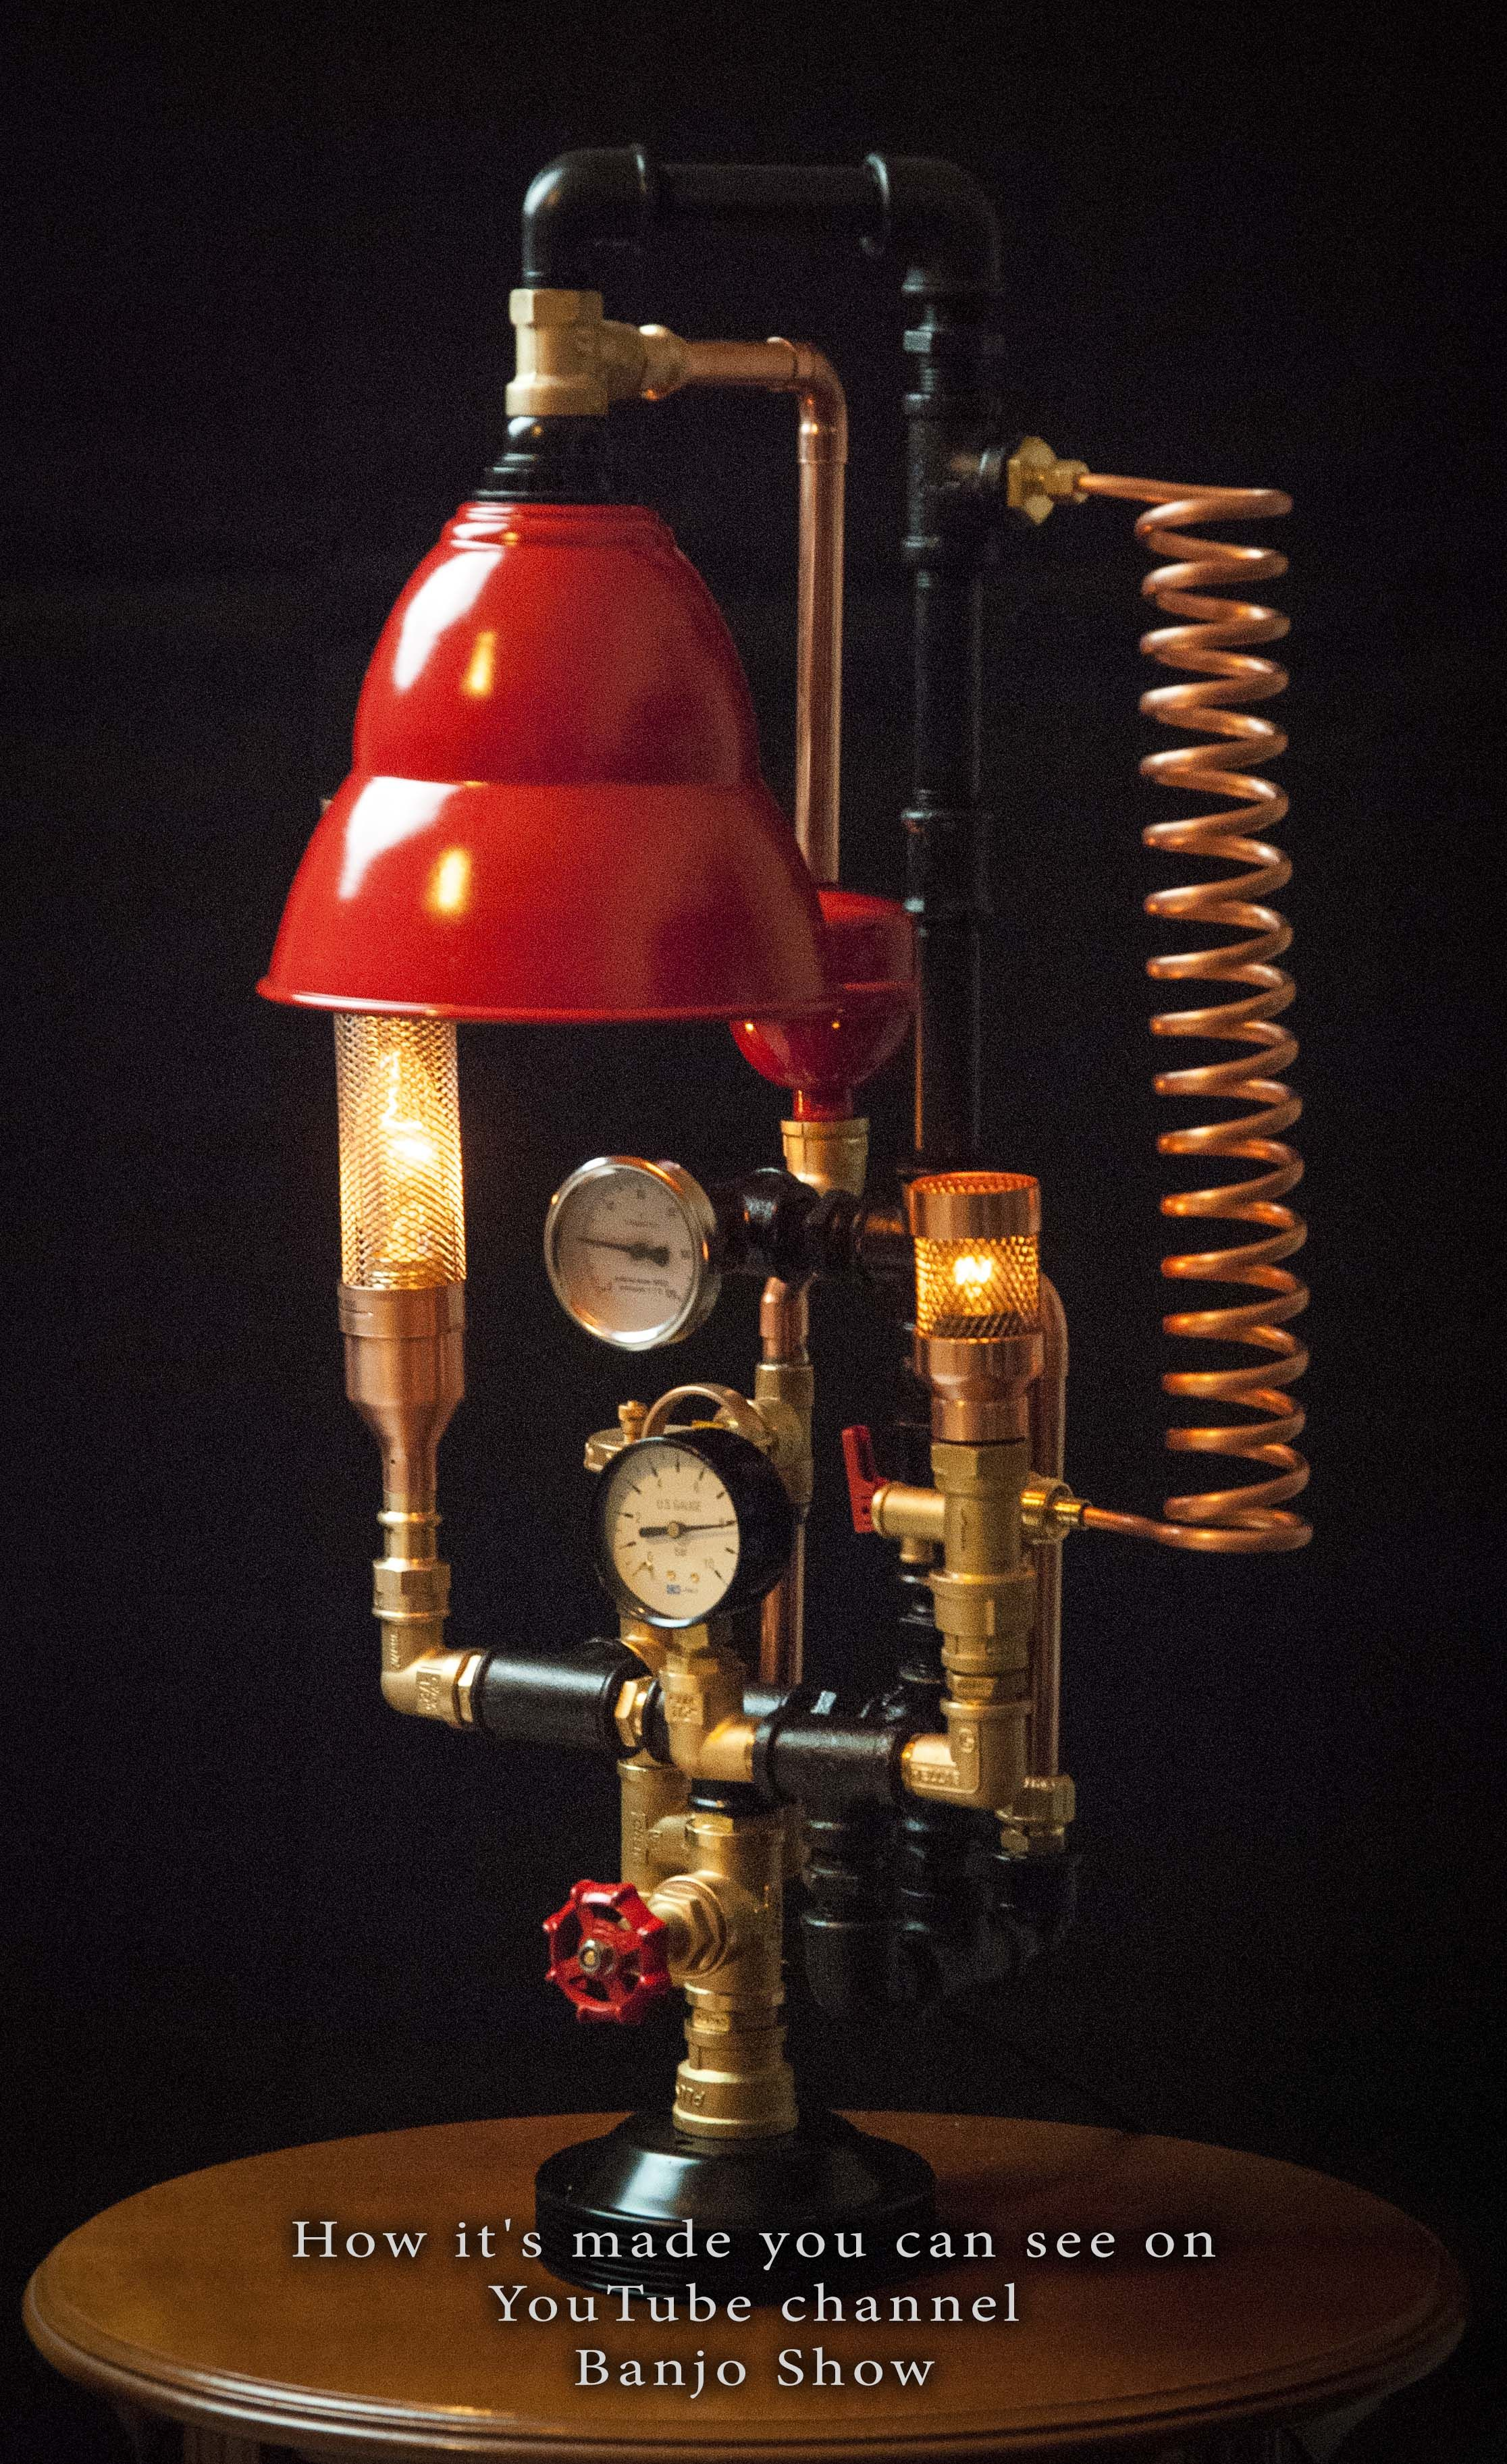 Pin by Banjo Show on Steampunk DIY Industrial Pipe Lamp #6 ...